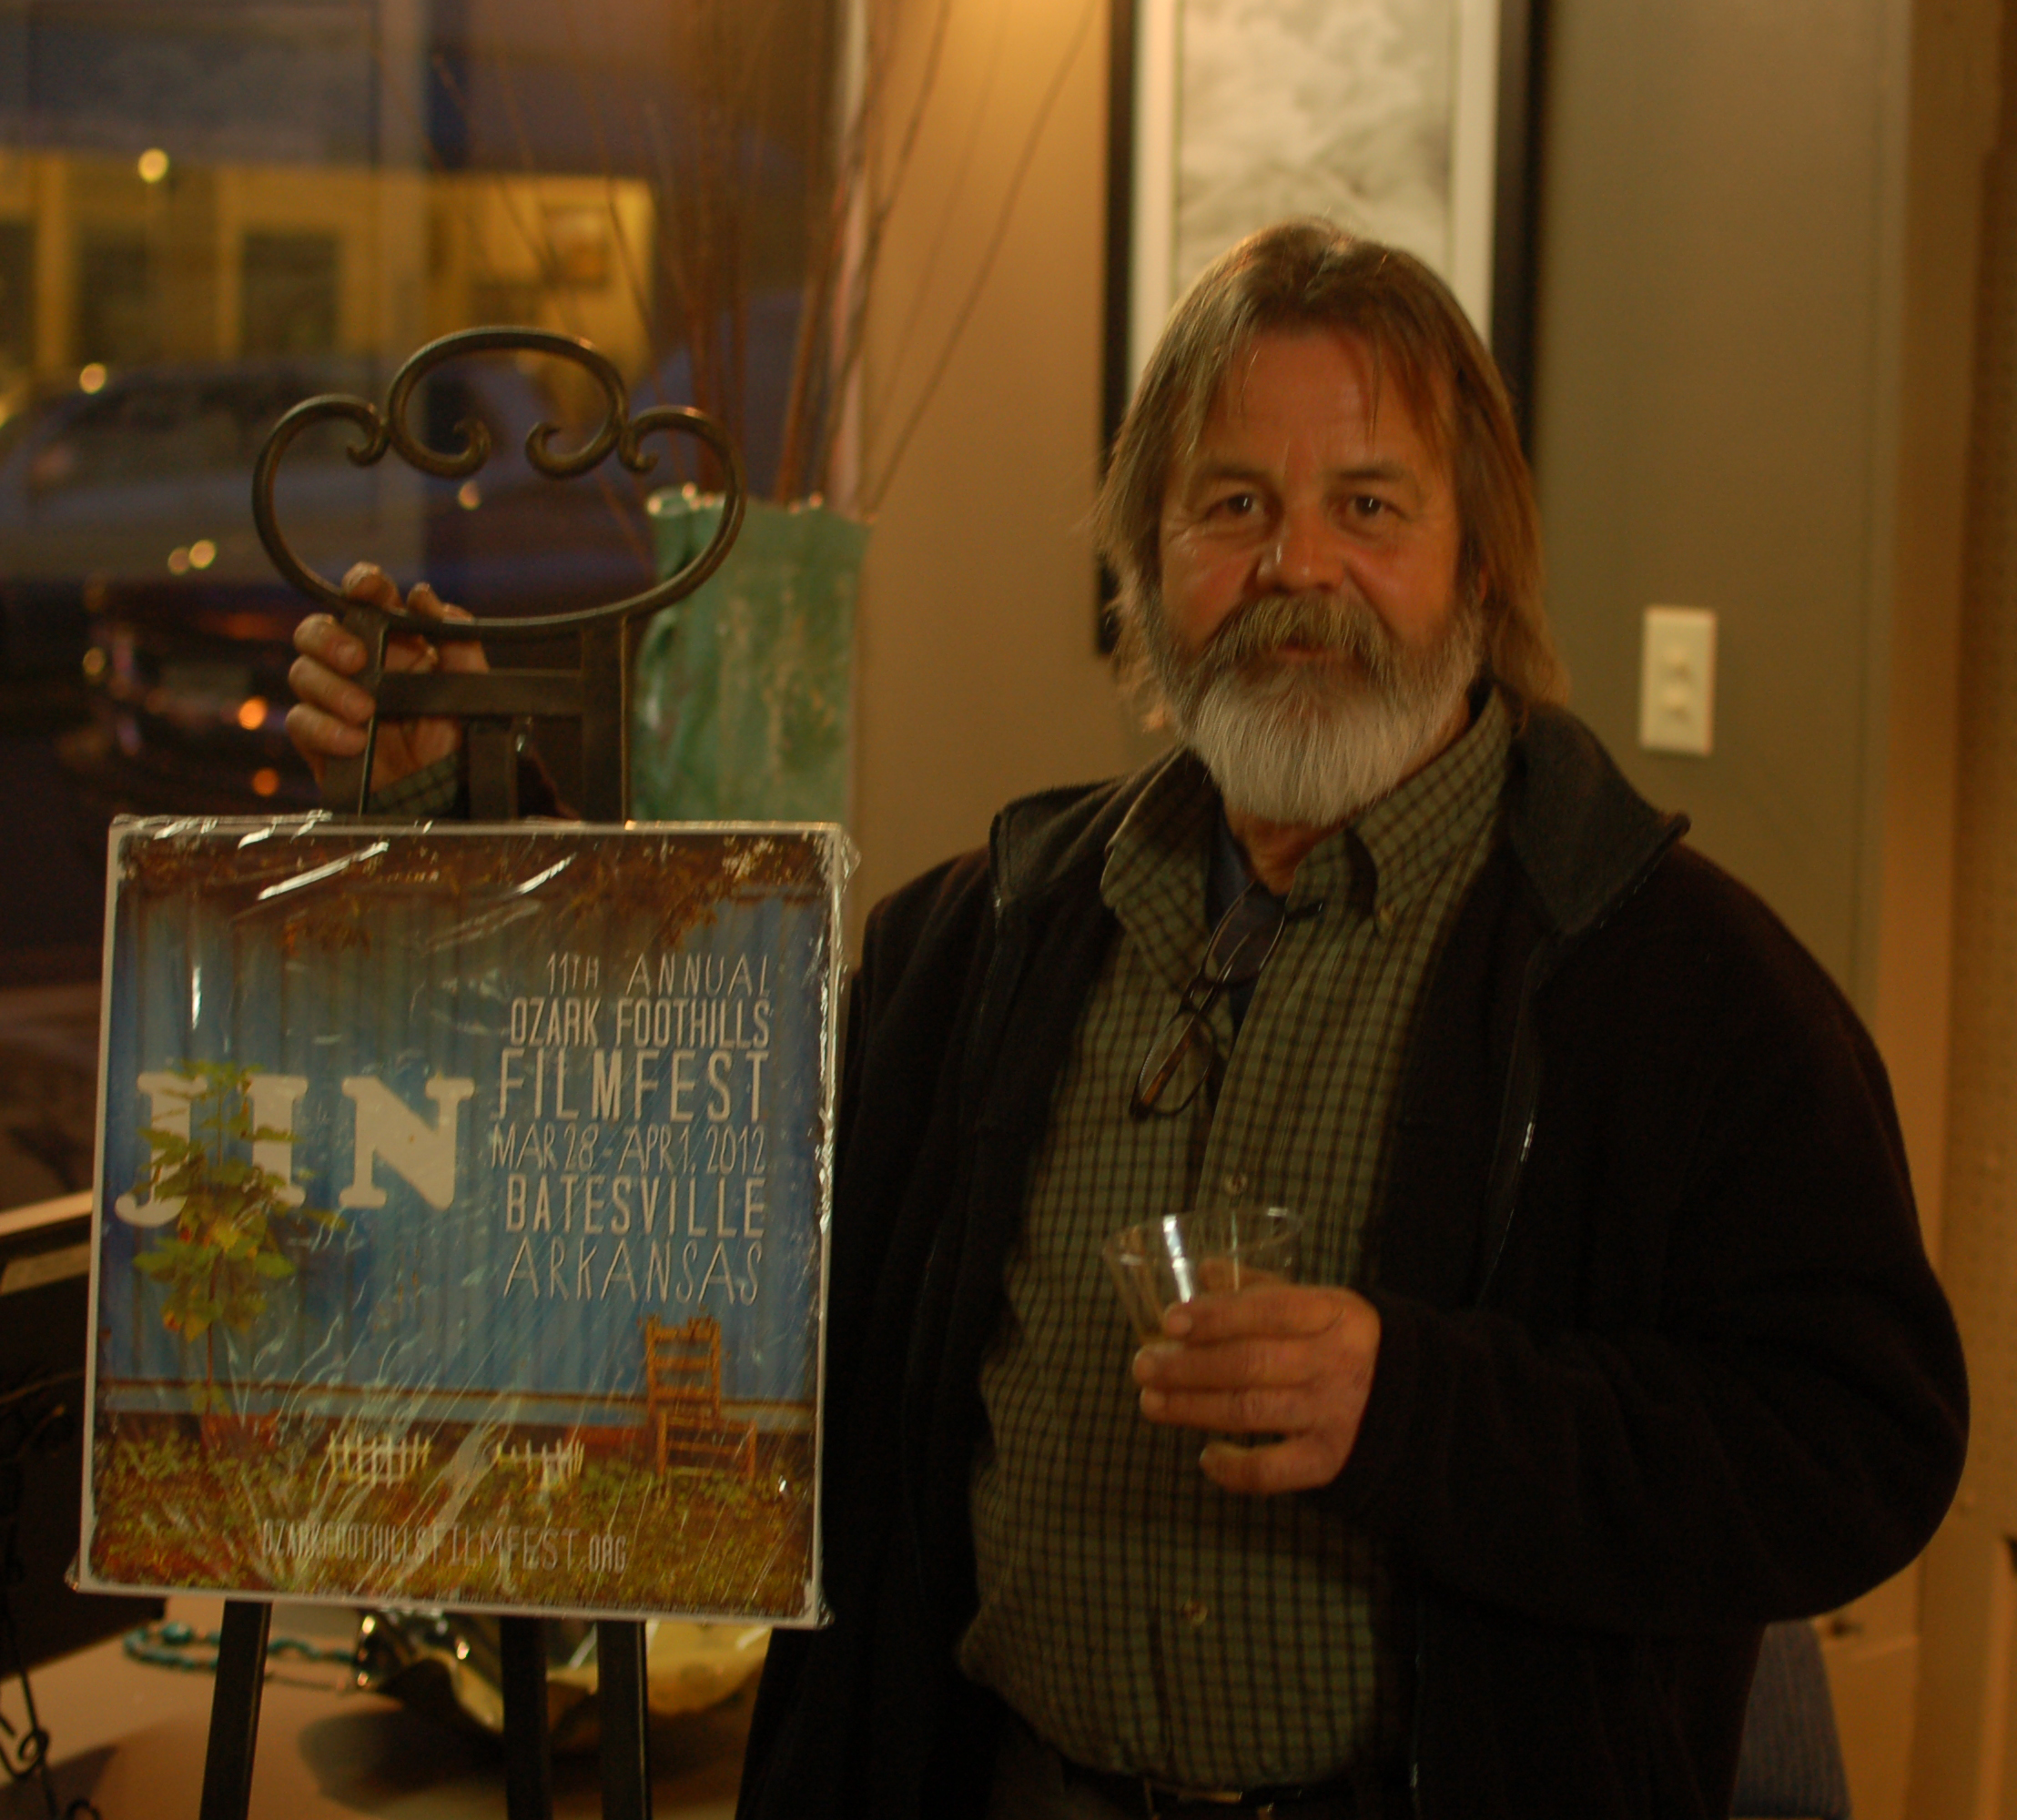 My dad with the FilmFest poster